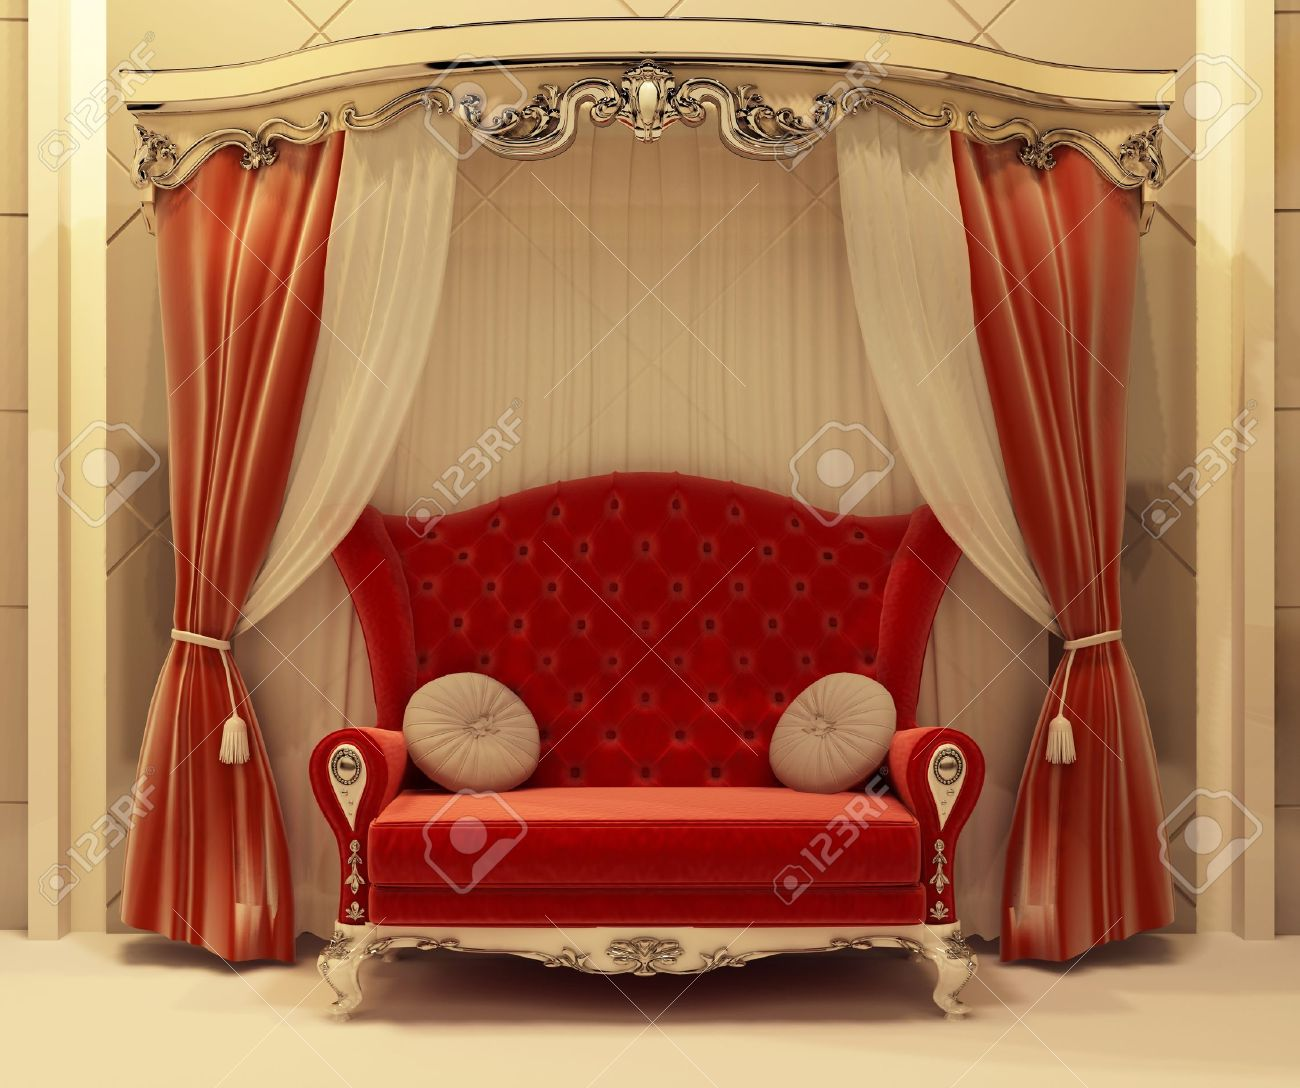 3D Red Velvet Curtain And Royal Sofa Stock Photo   10031994